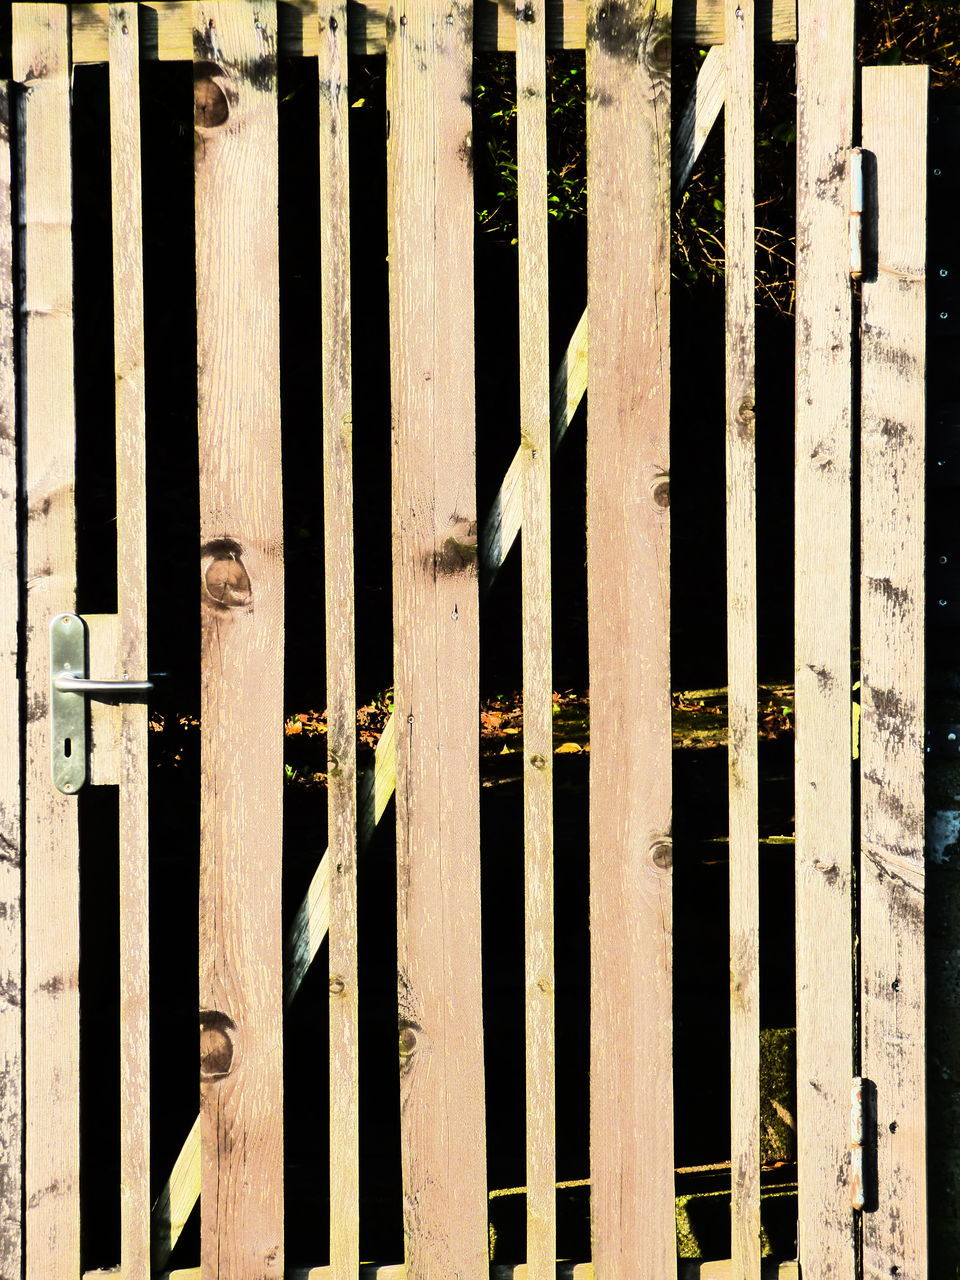 safety, outdoors, full frame, backgrounds, textured, day, no people, pattern, close-up